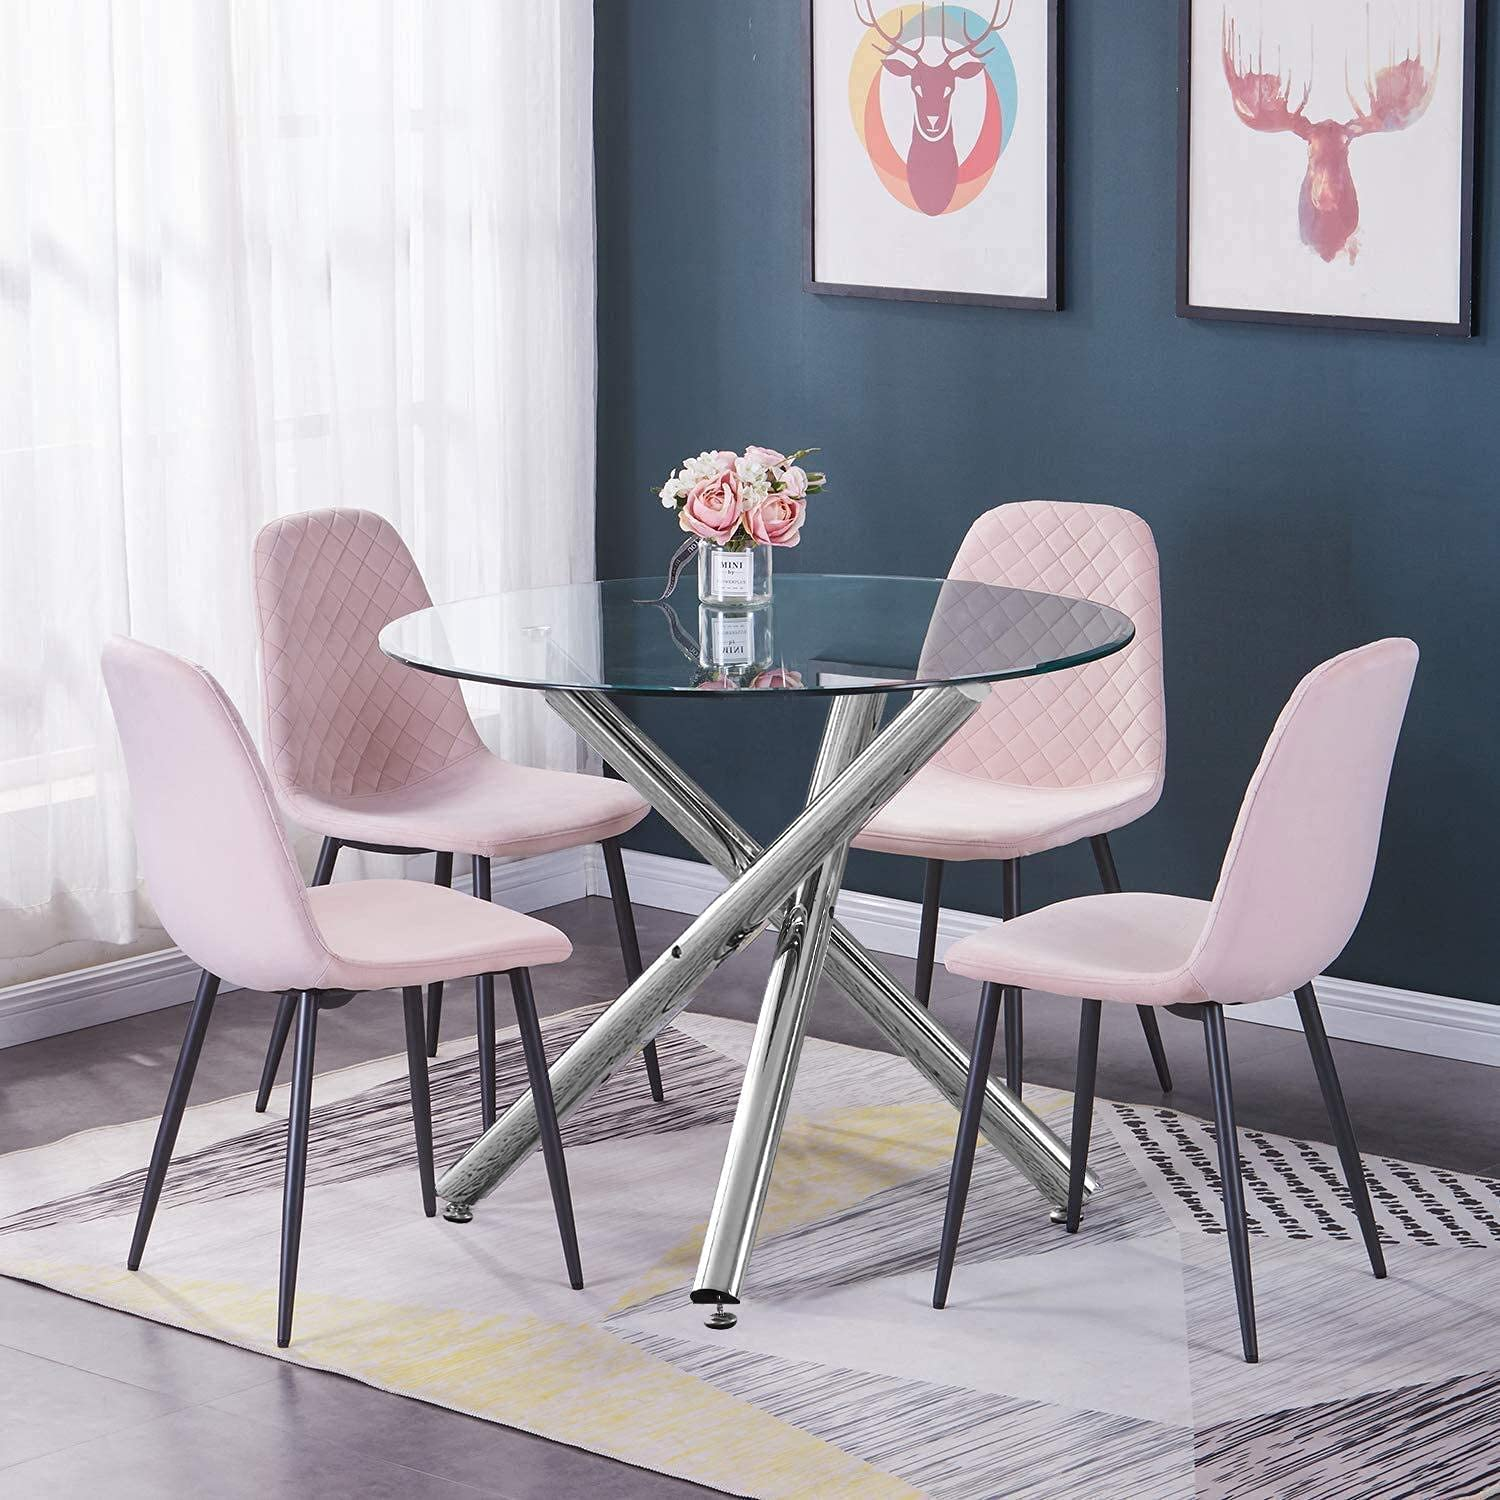 BOJU Round Glass Kitchen Dining Table and Chairs Set of 9 Pink Velvet  Upholstered Occasional Chairs and Clear Tempered Glass Table Set